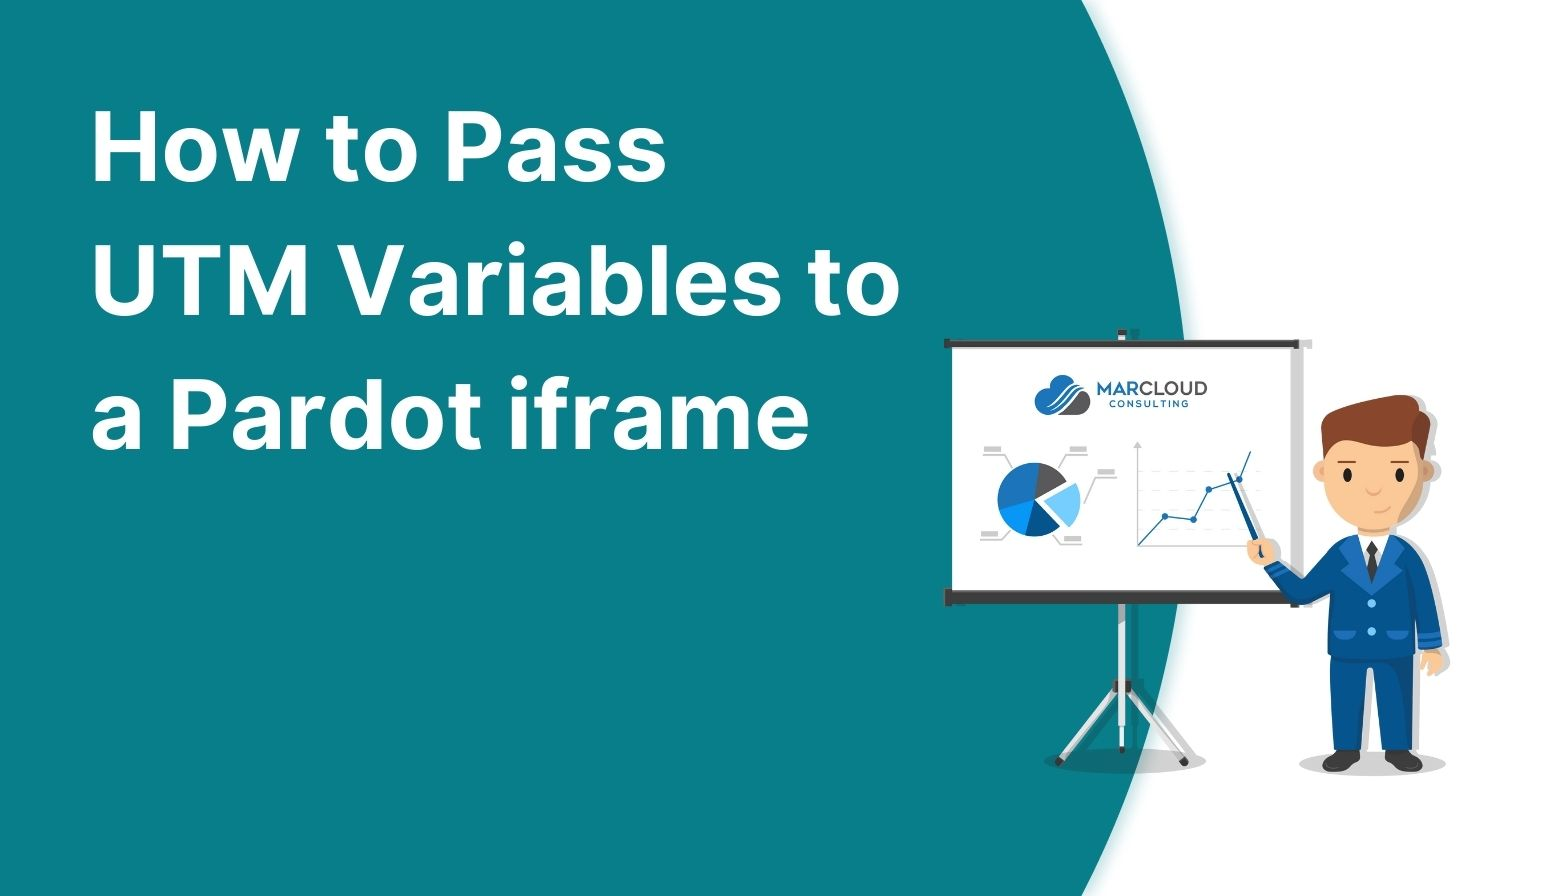 Feature image: How to pass UTM variabled to a Pardot iframe